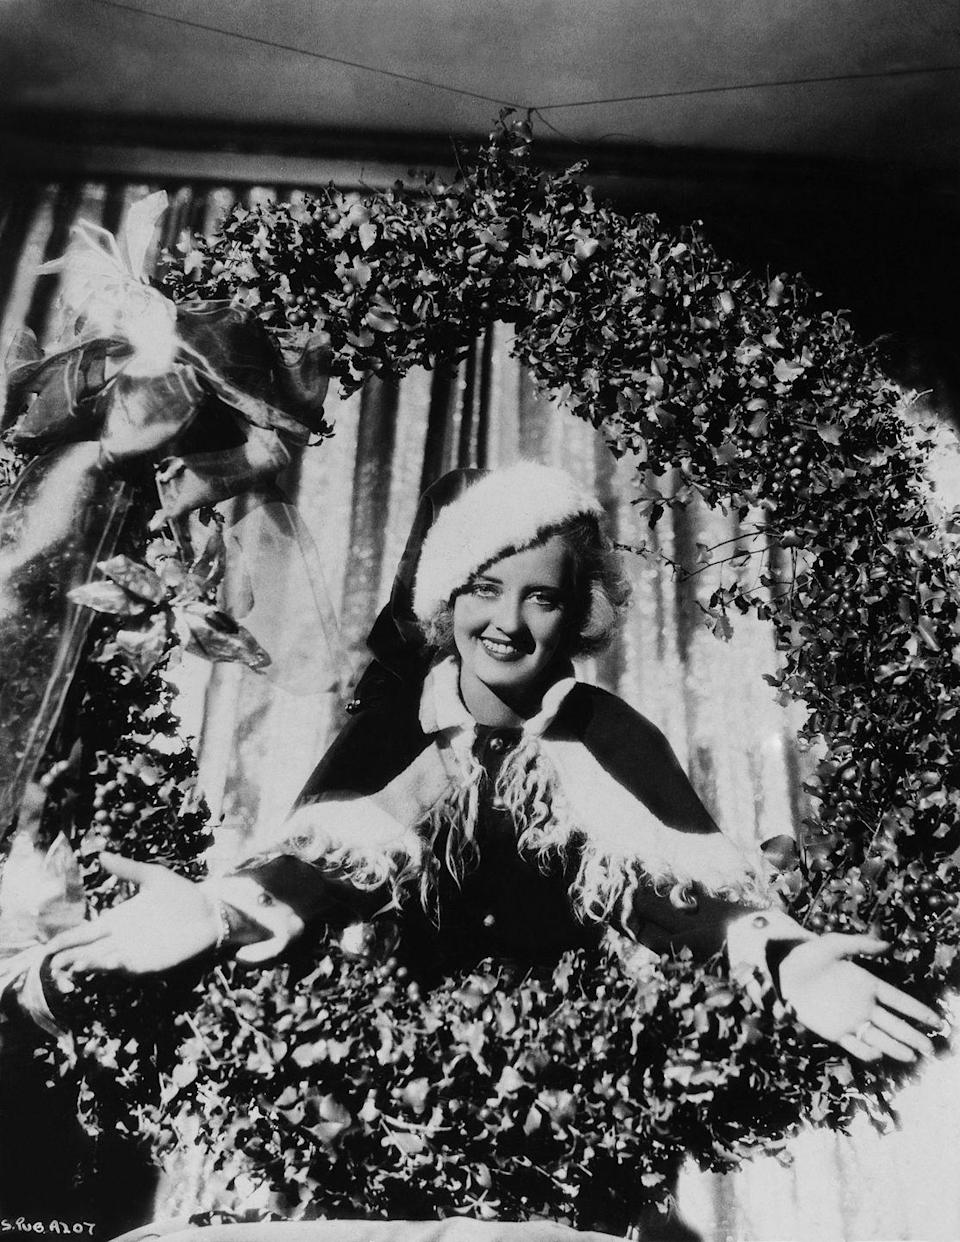 <p>Bette Davis does her best Santa Claus as she poses popping out of a Christmas wreath, circa 1930. Davis arrived in Hollywood in the early 1930s and quickly rose to fame after appearing in <em>Of</em> <em>Human Bondage</em> in 1934. </p>